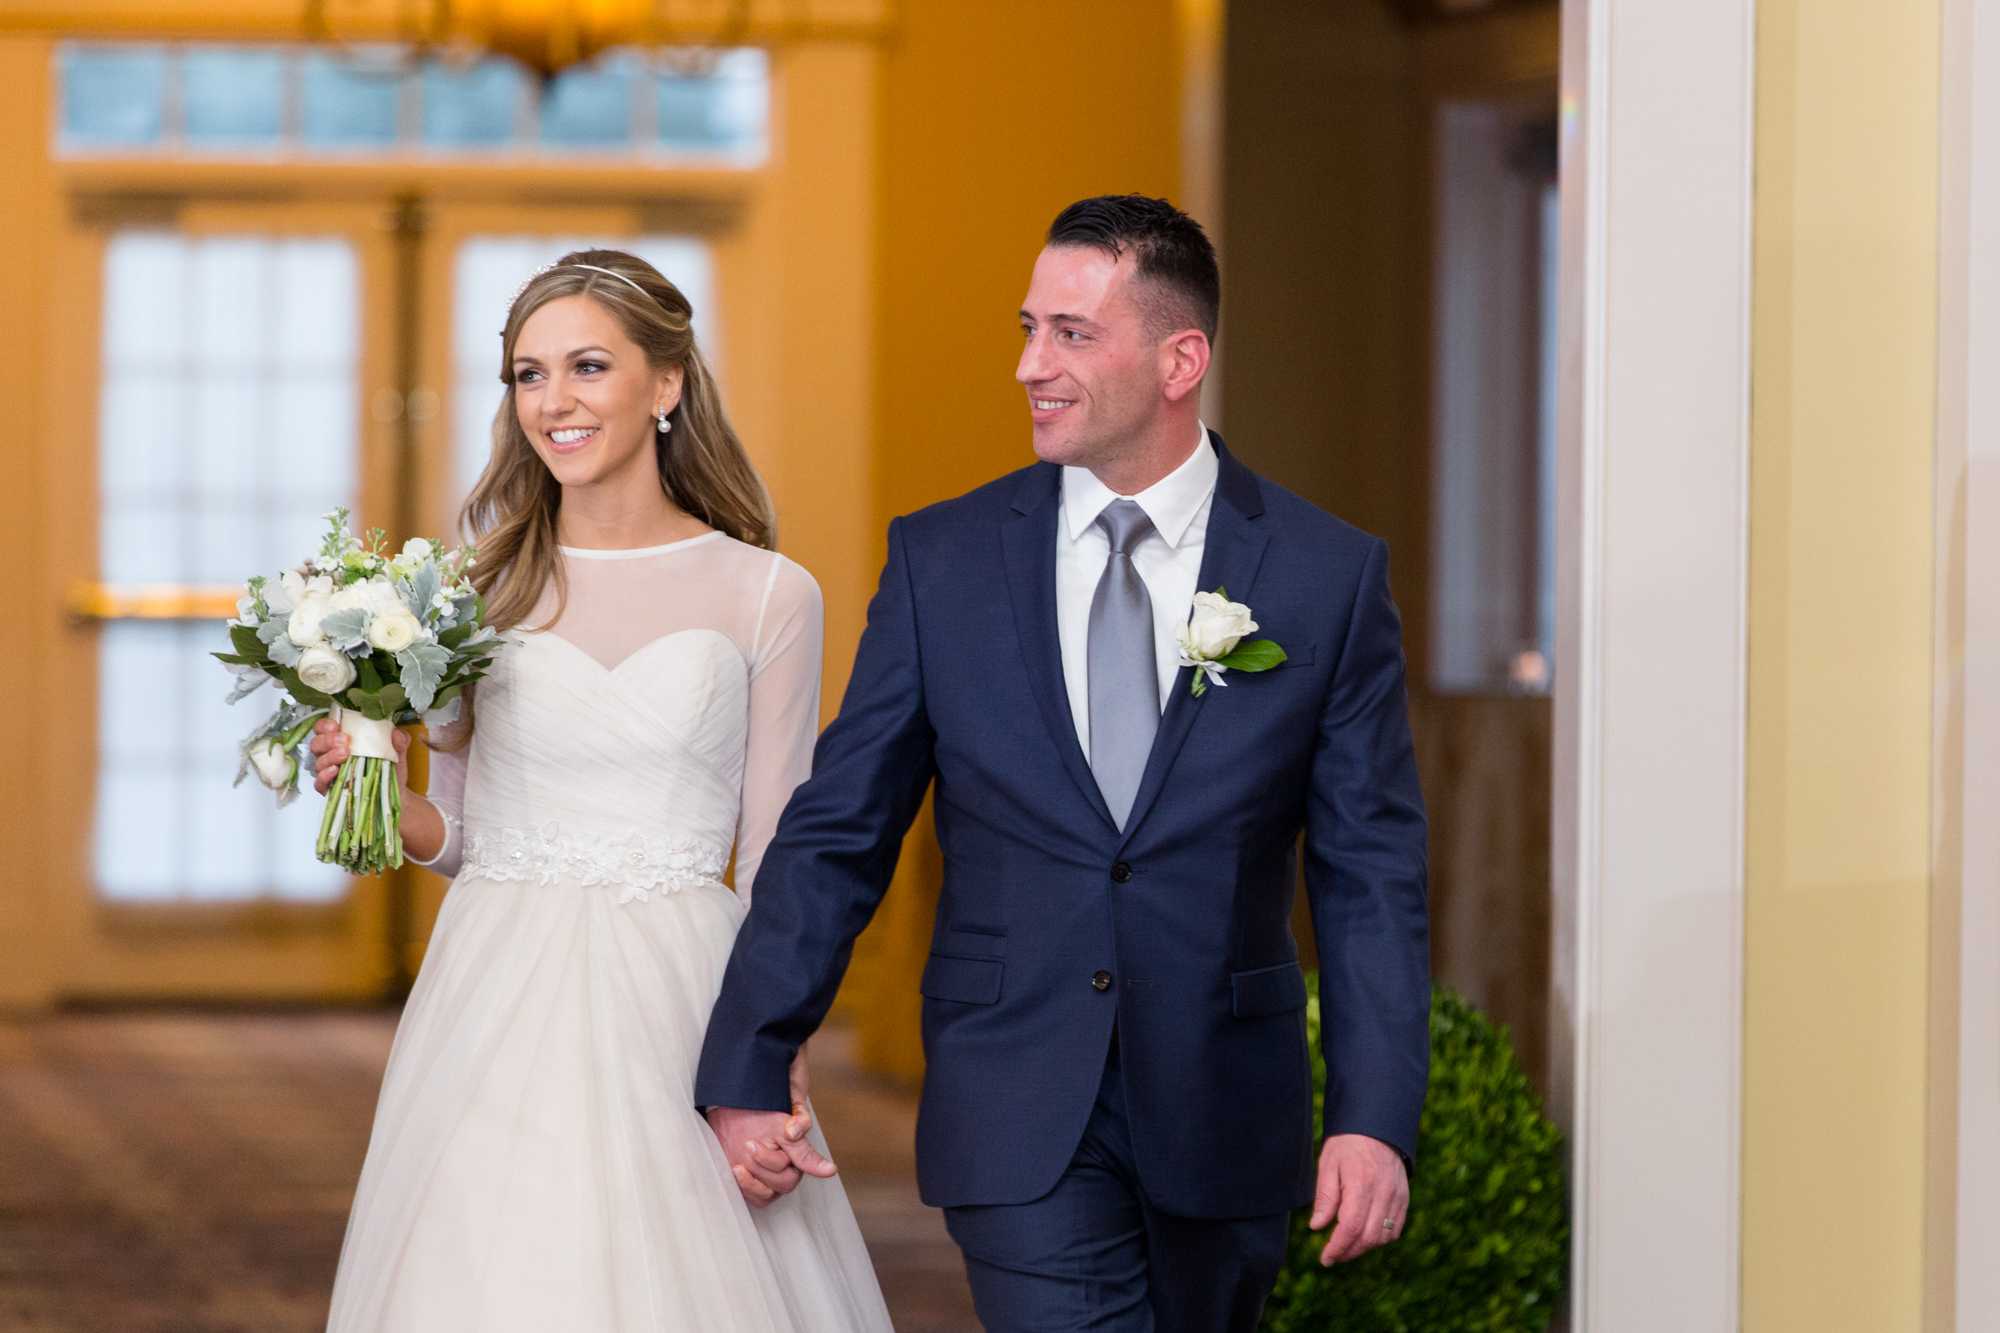 86Allegra_Anderson_Photography_CT_Wedding_Photographer_Riverview_Simsbury_Saleh_Web